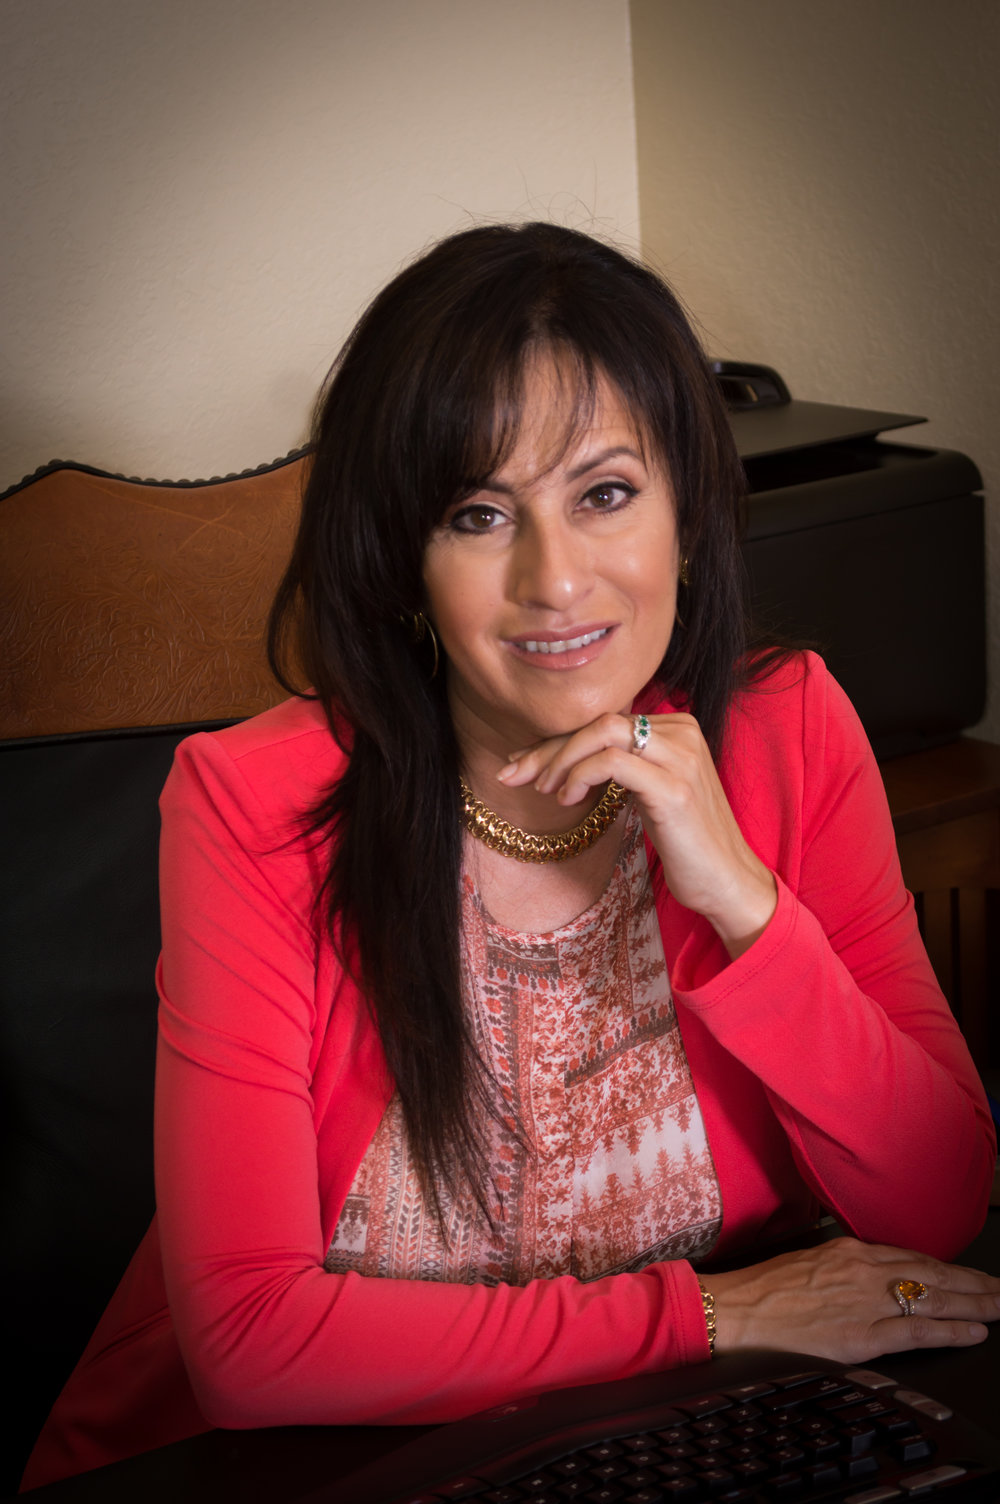 Ivonne continually delivers professional, competent and ethical real estate  services to her clients.